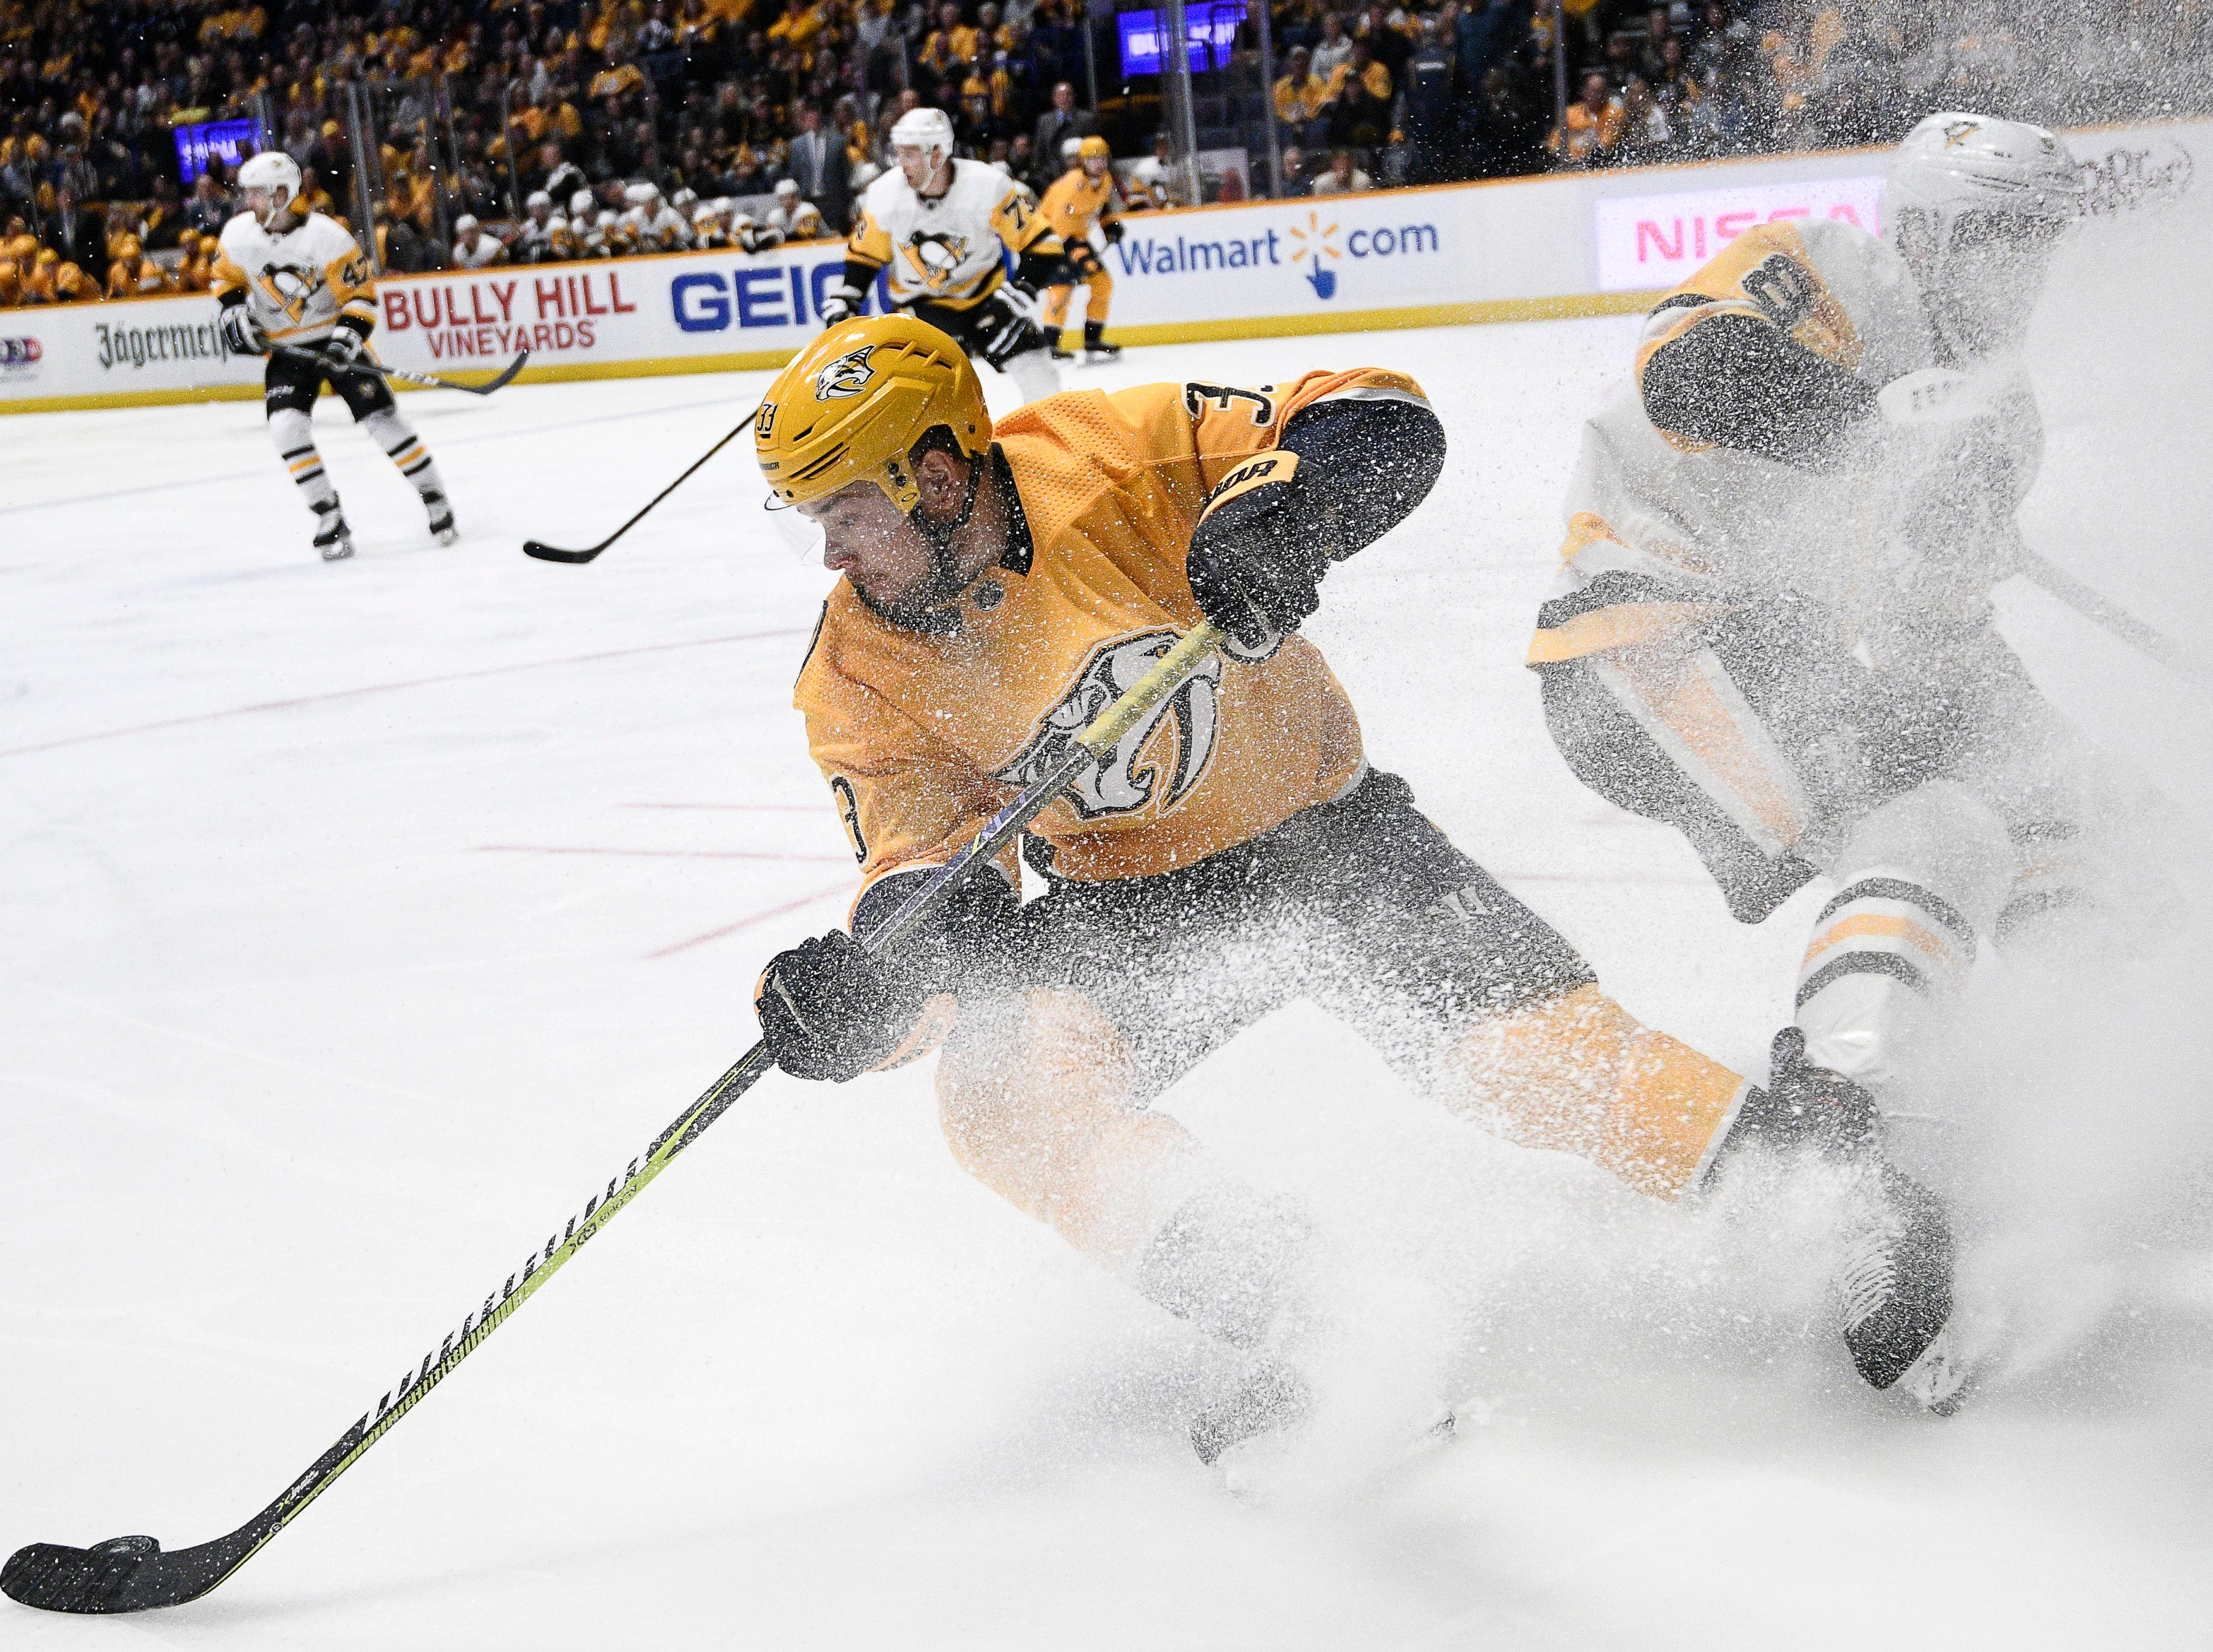 Predators right wing Viktor Arvidsson (33) stops fast to gather a puck before Penguins defenseman Brian Dumoulin (8) during the first period at Bridgestone Arena Thursday, March 21, 2019 in Nashville, Tenn.